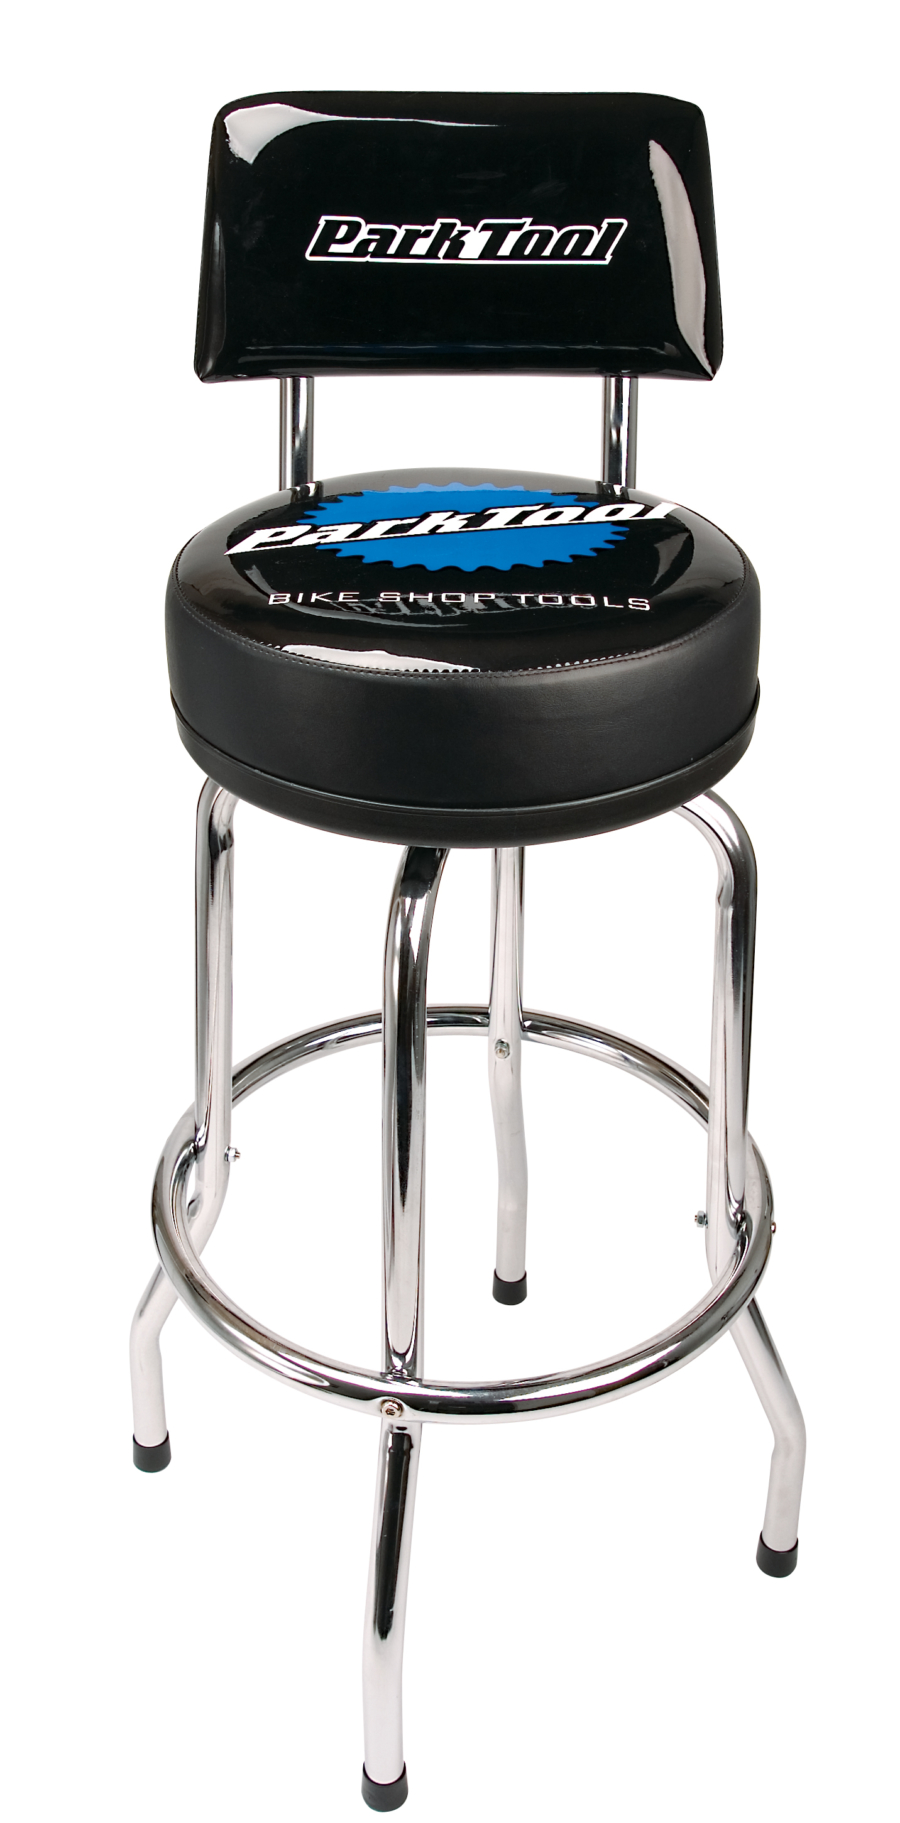 The Park Tool STL-1.2 Shop Stool with STL-3 Shop Stool Backrest Kit attached, enlarged